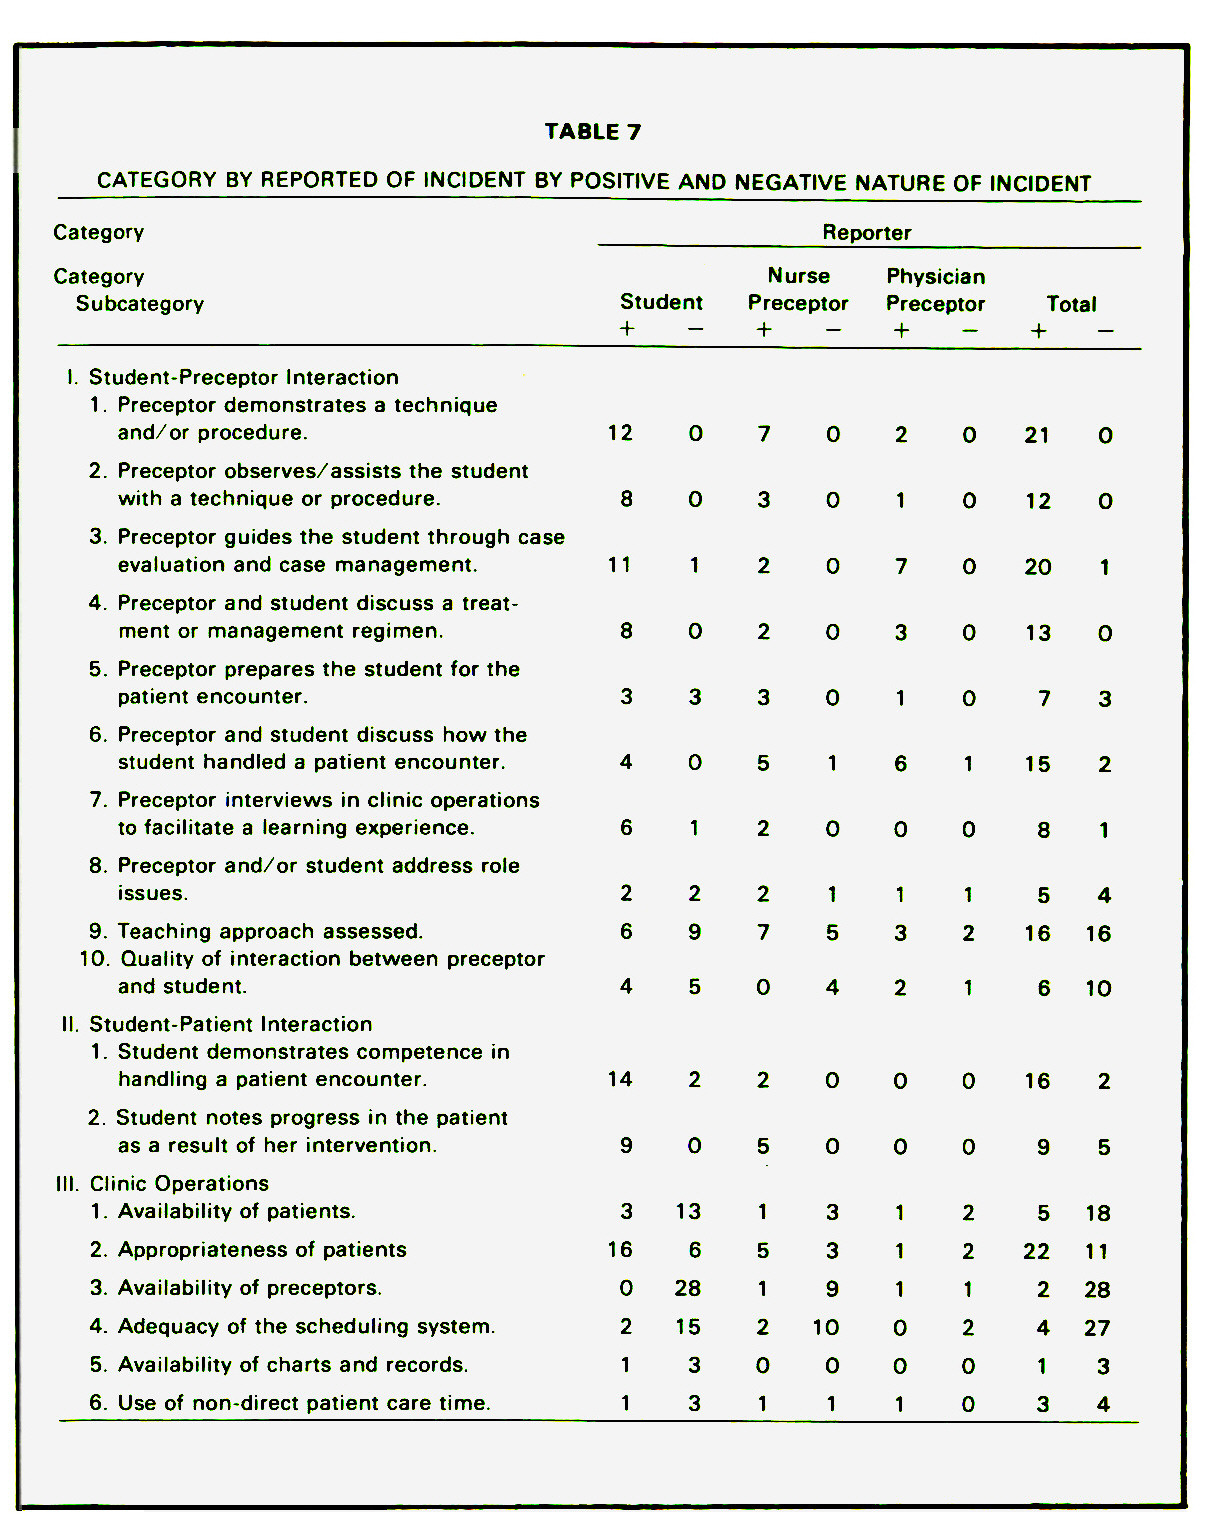 TABLE 7CATEGORY BY REPORTED OF INCIDENT BY POSITIVE AND NEGATIVE NATURE OF INCIDENT